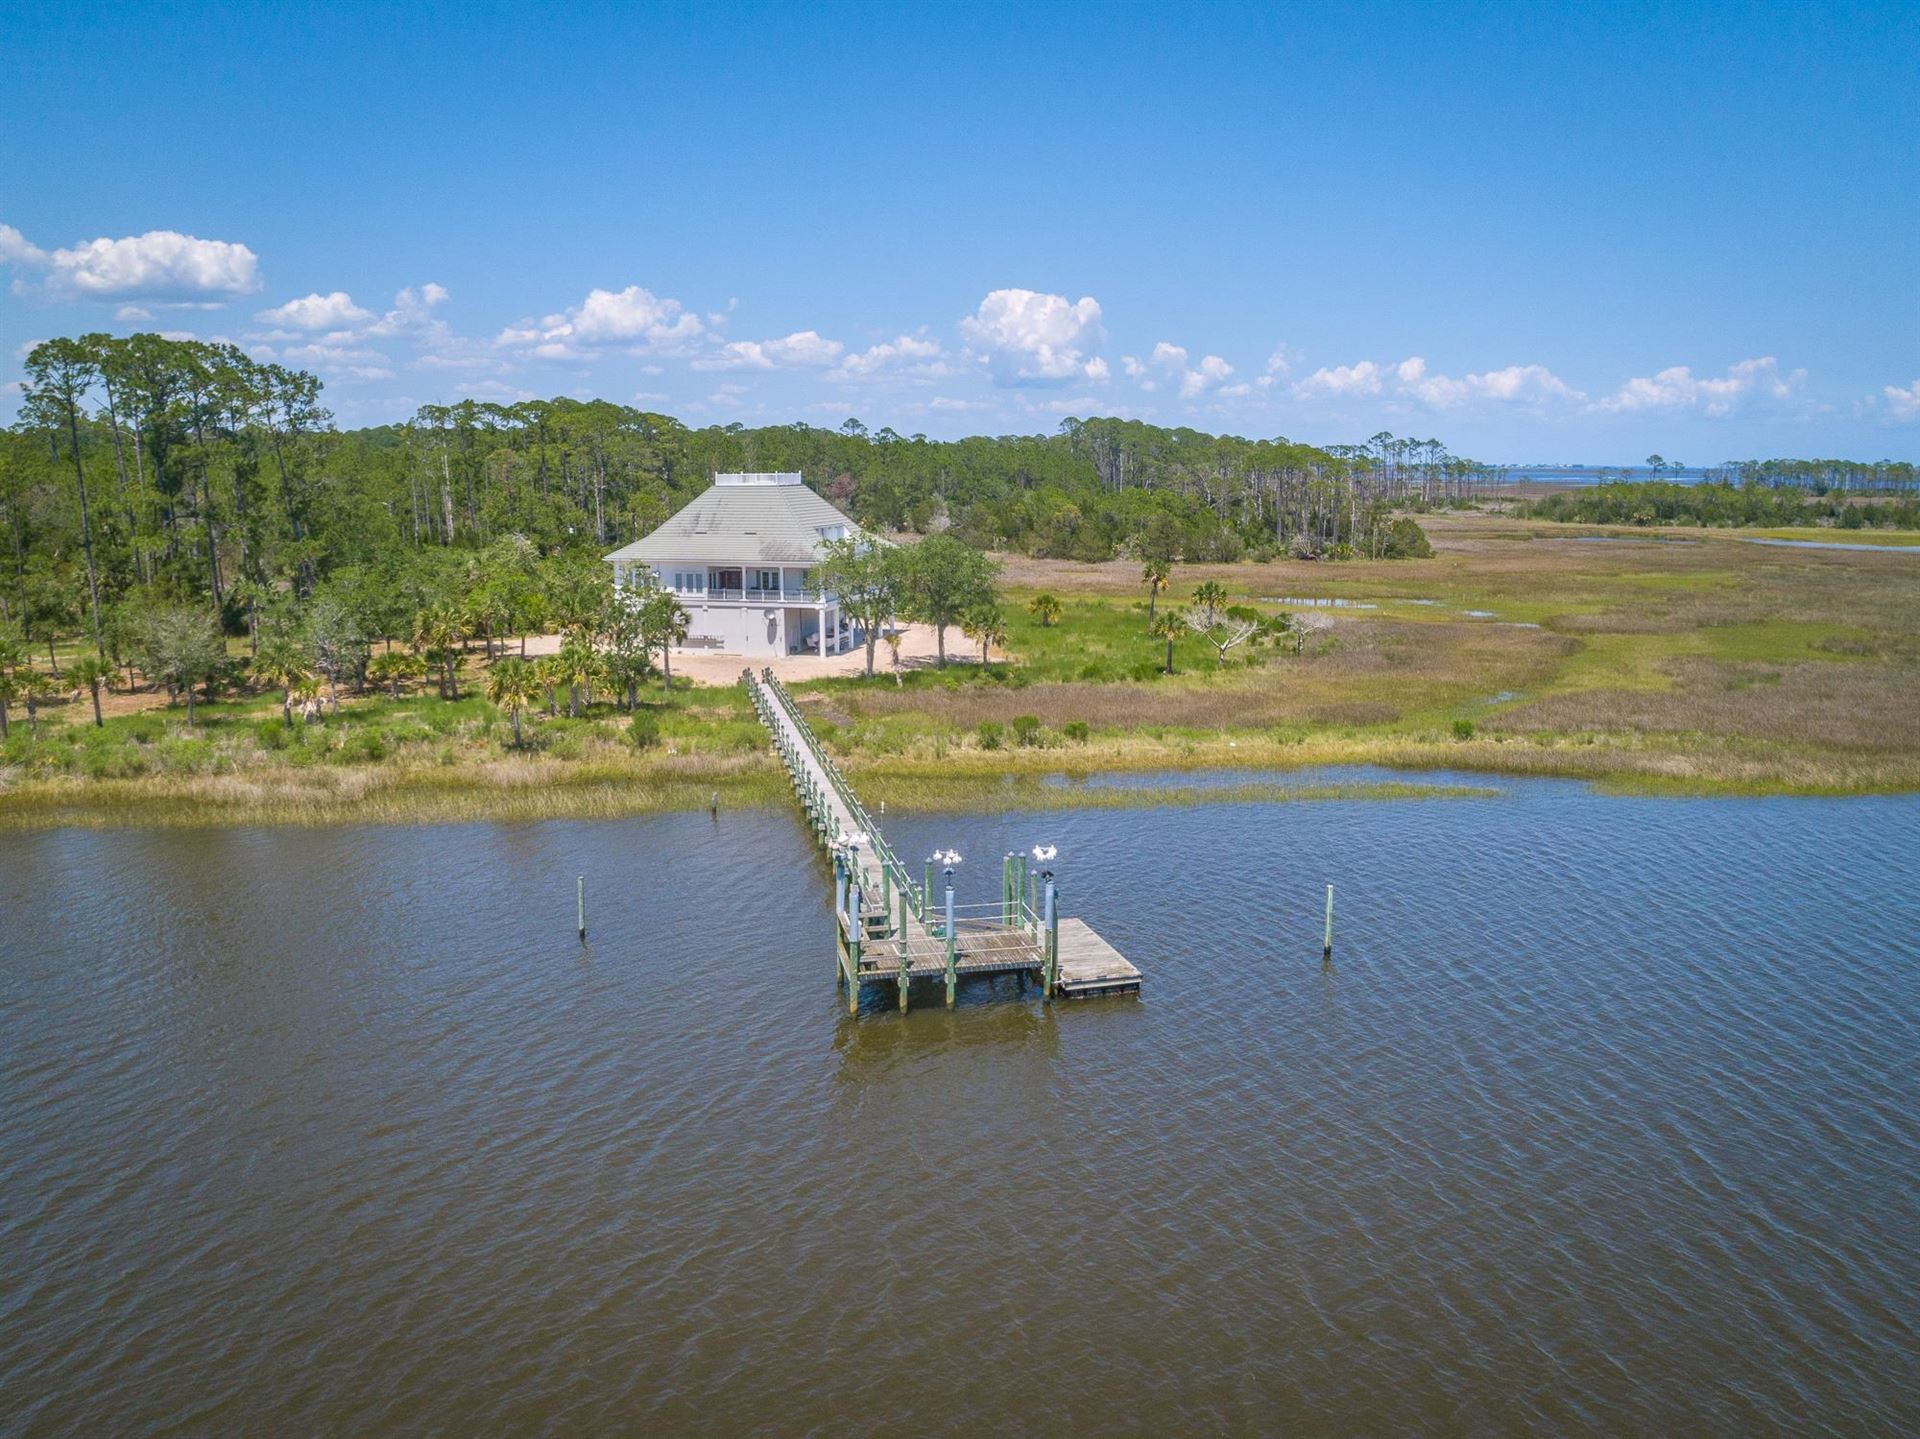 369 Bottoms Road, Panacea, FL 32346 - MLS#: 328361